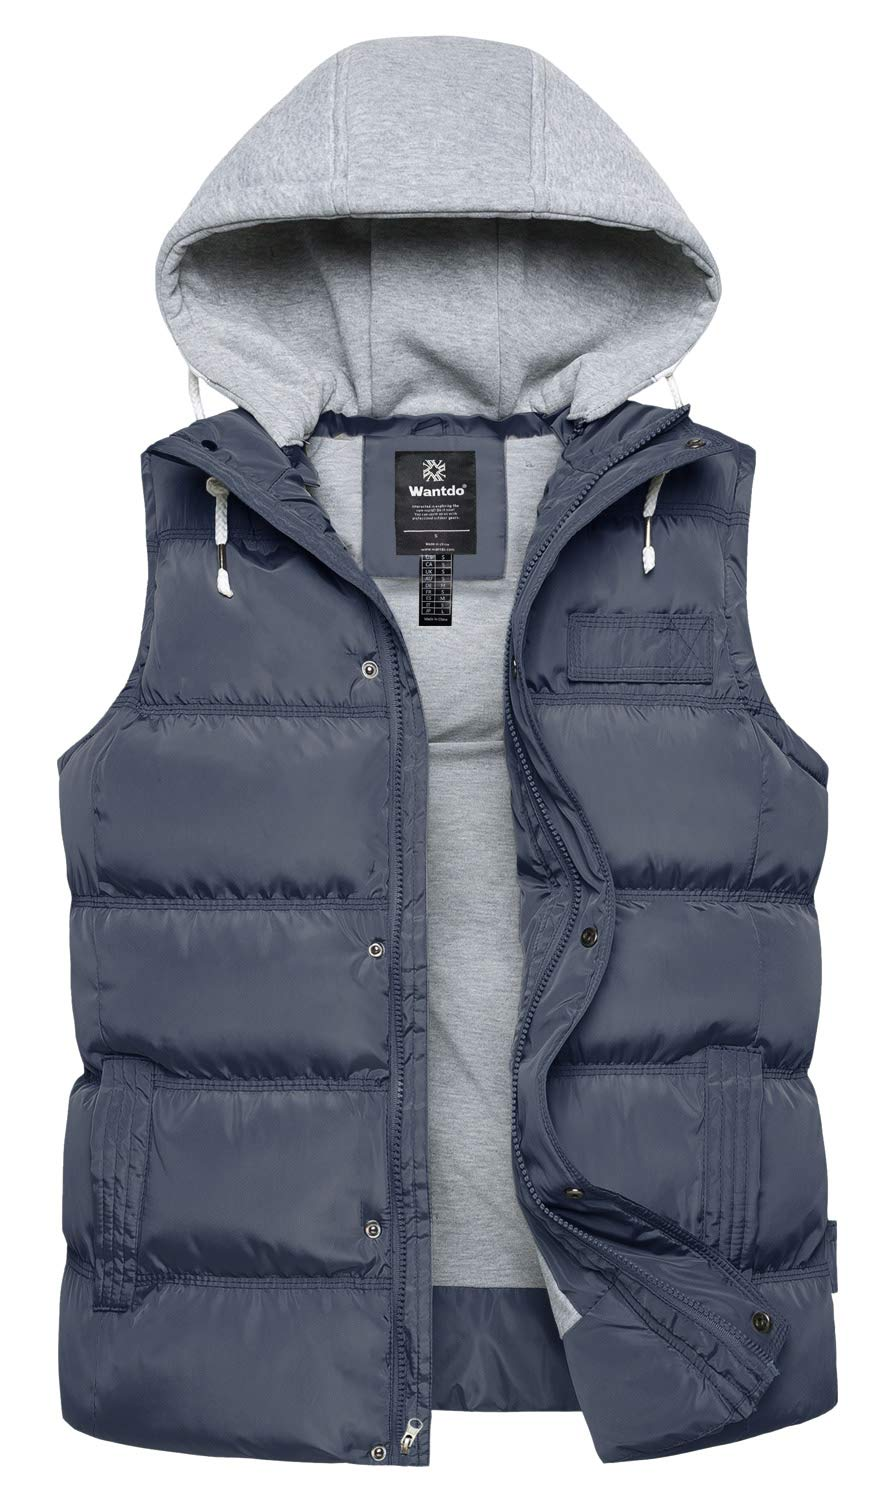 Wantdo Men's Thickened Puffer Vest Outdoor Winter Jacket Sleeveless Grey Small by Wantdo